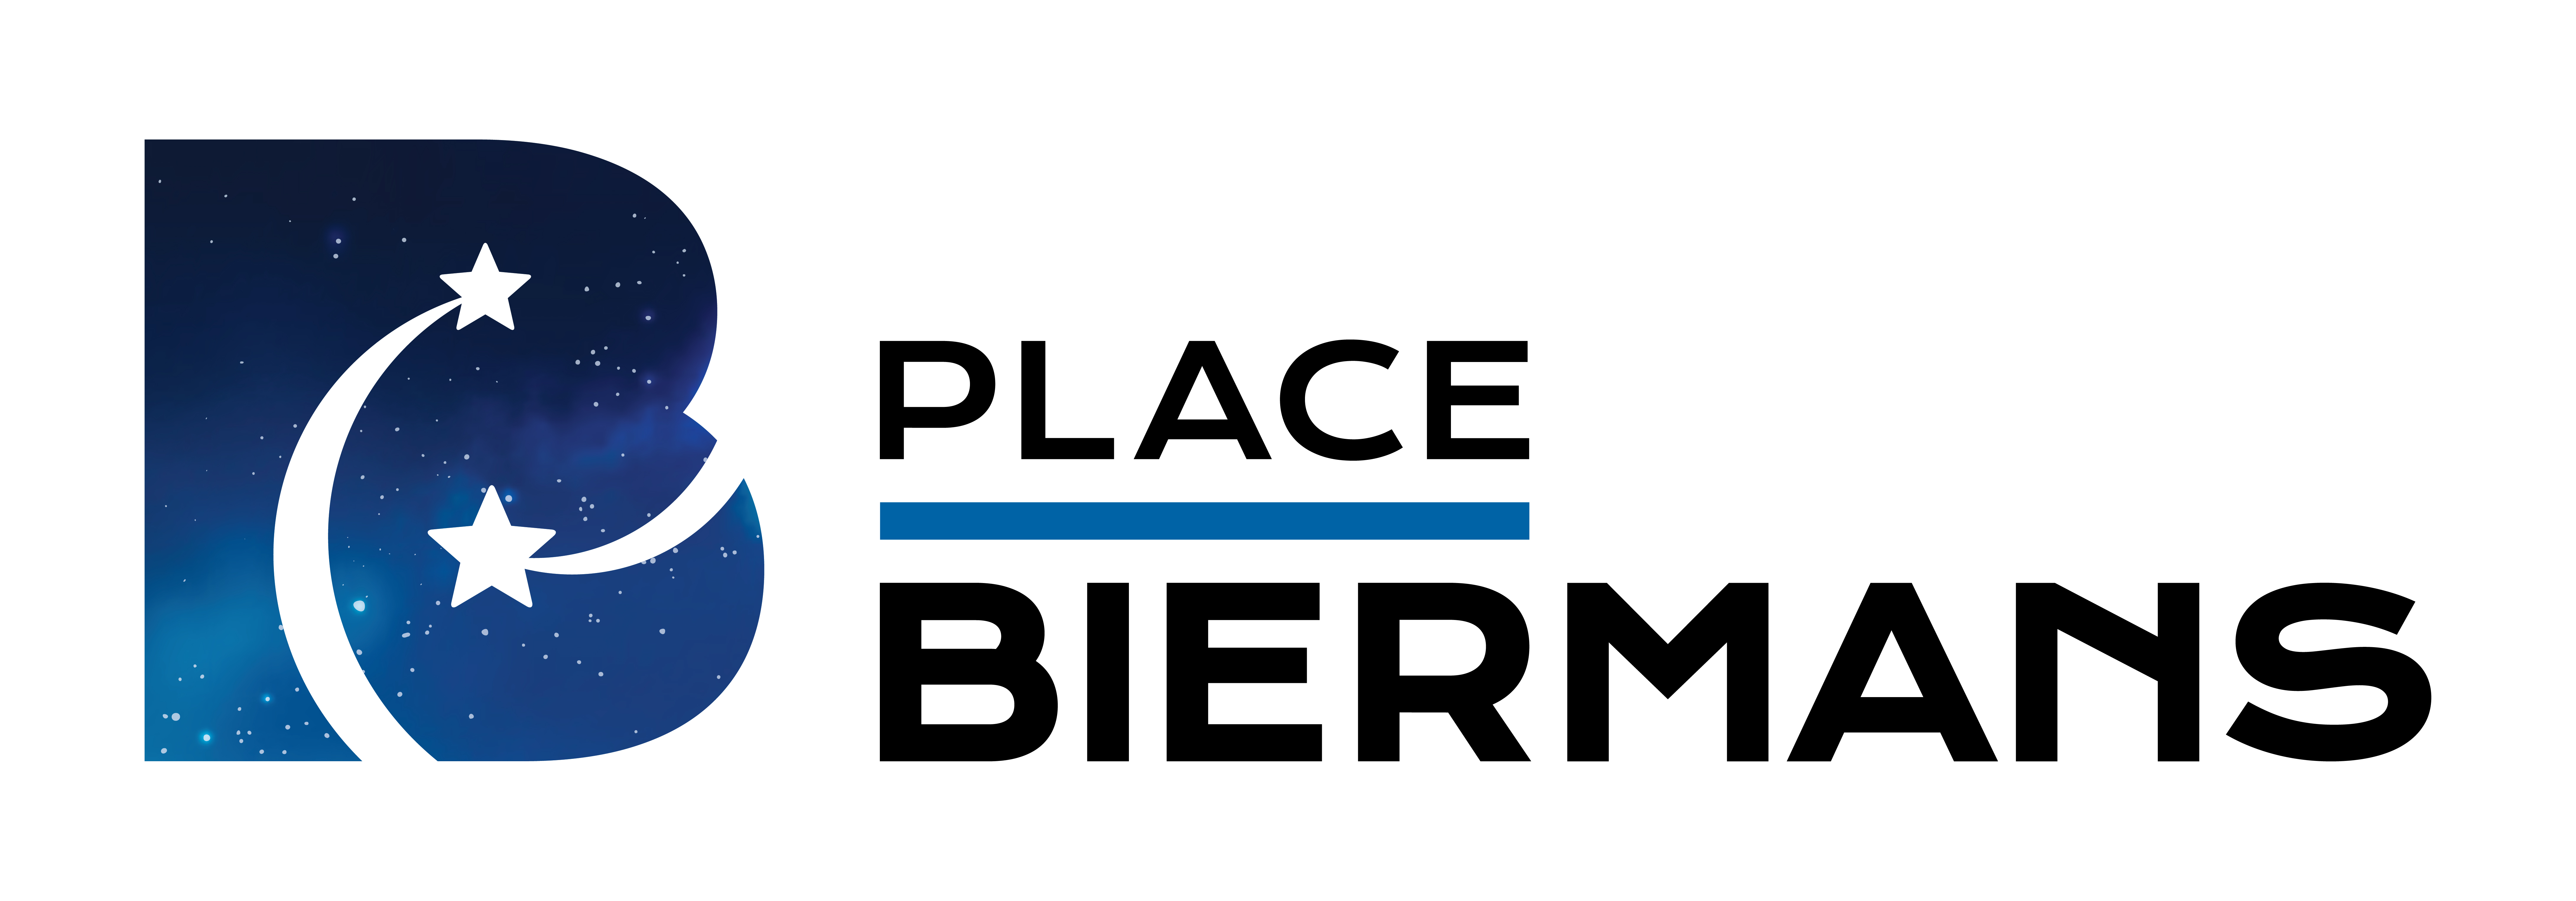 Place_Biermans_Couleurs